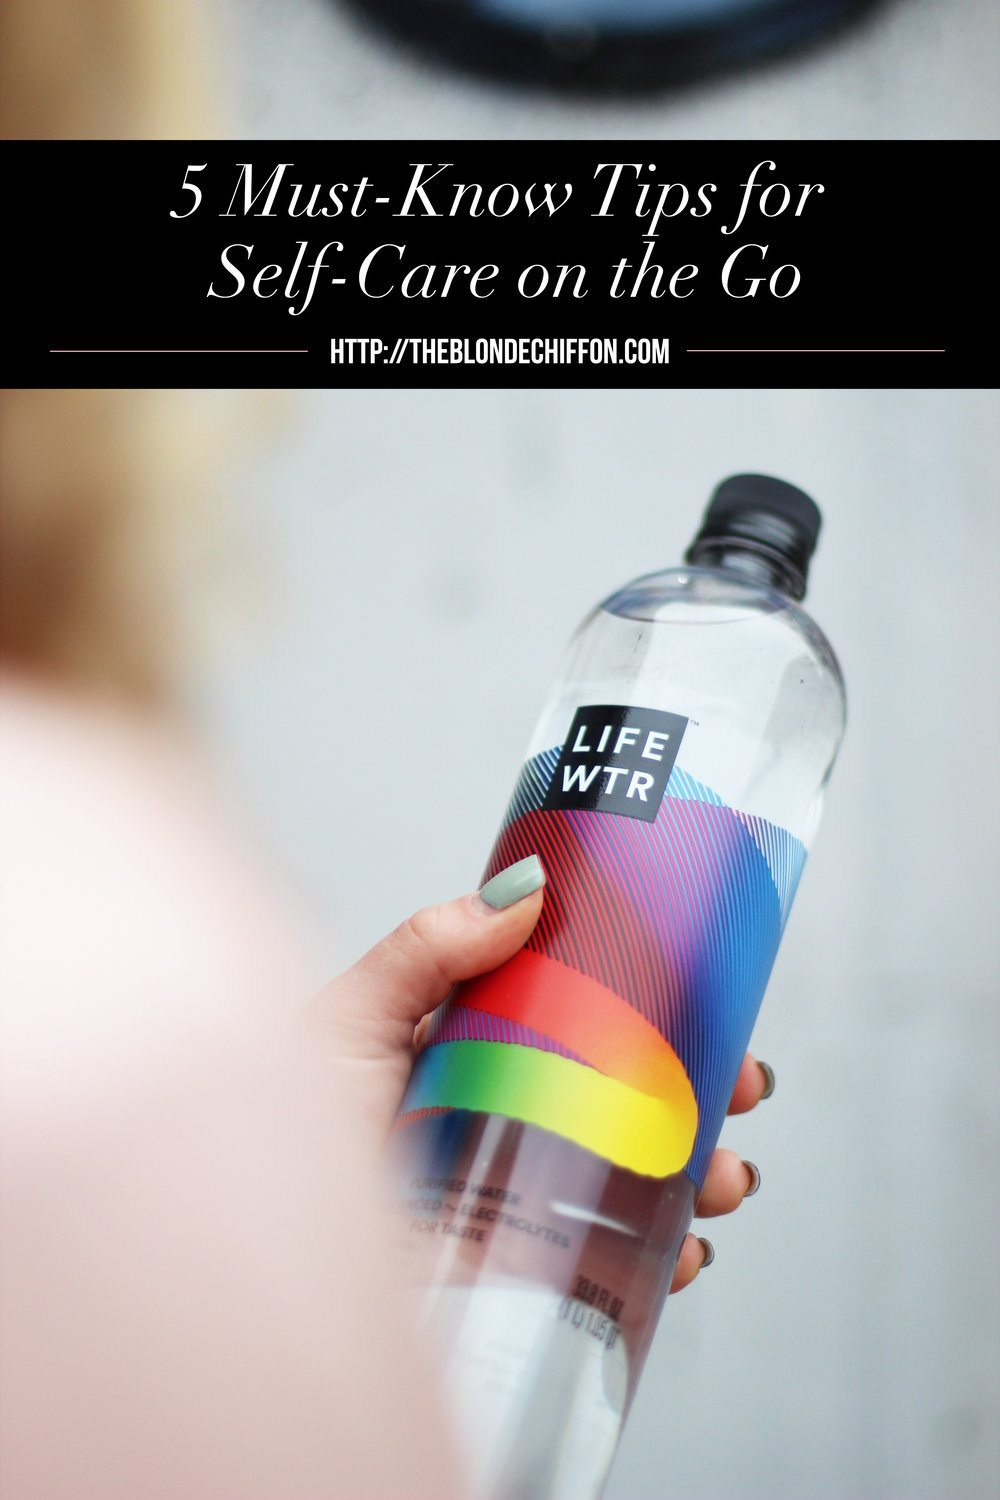 5 Must-Know Tips for Self-Care on the Go